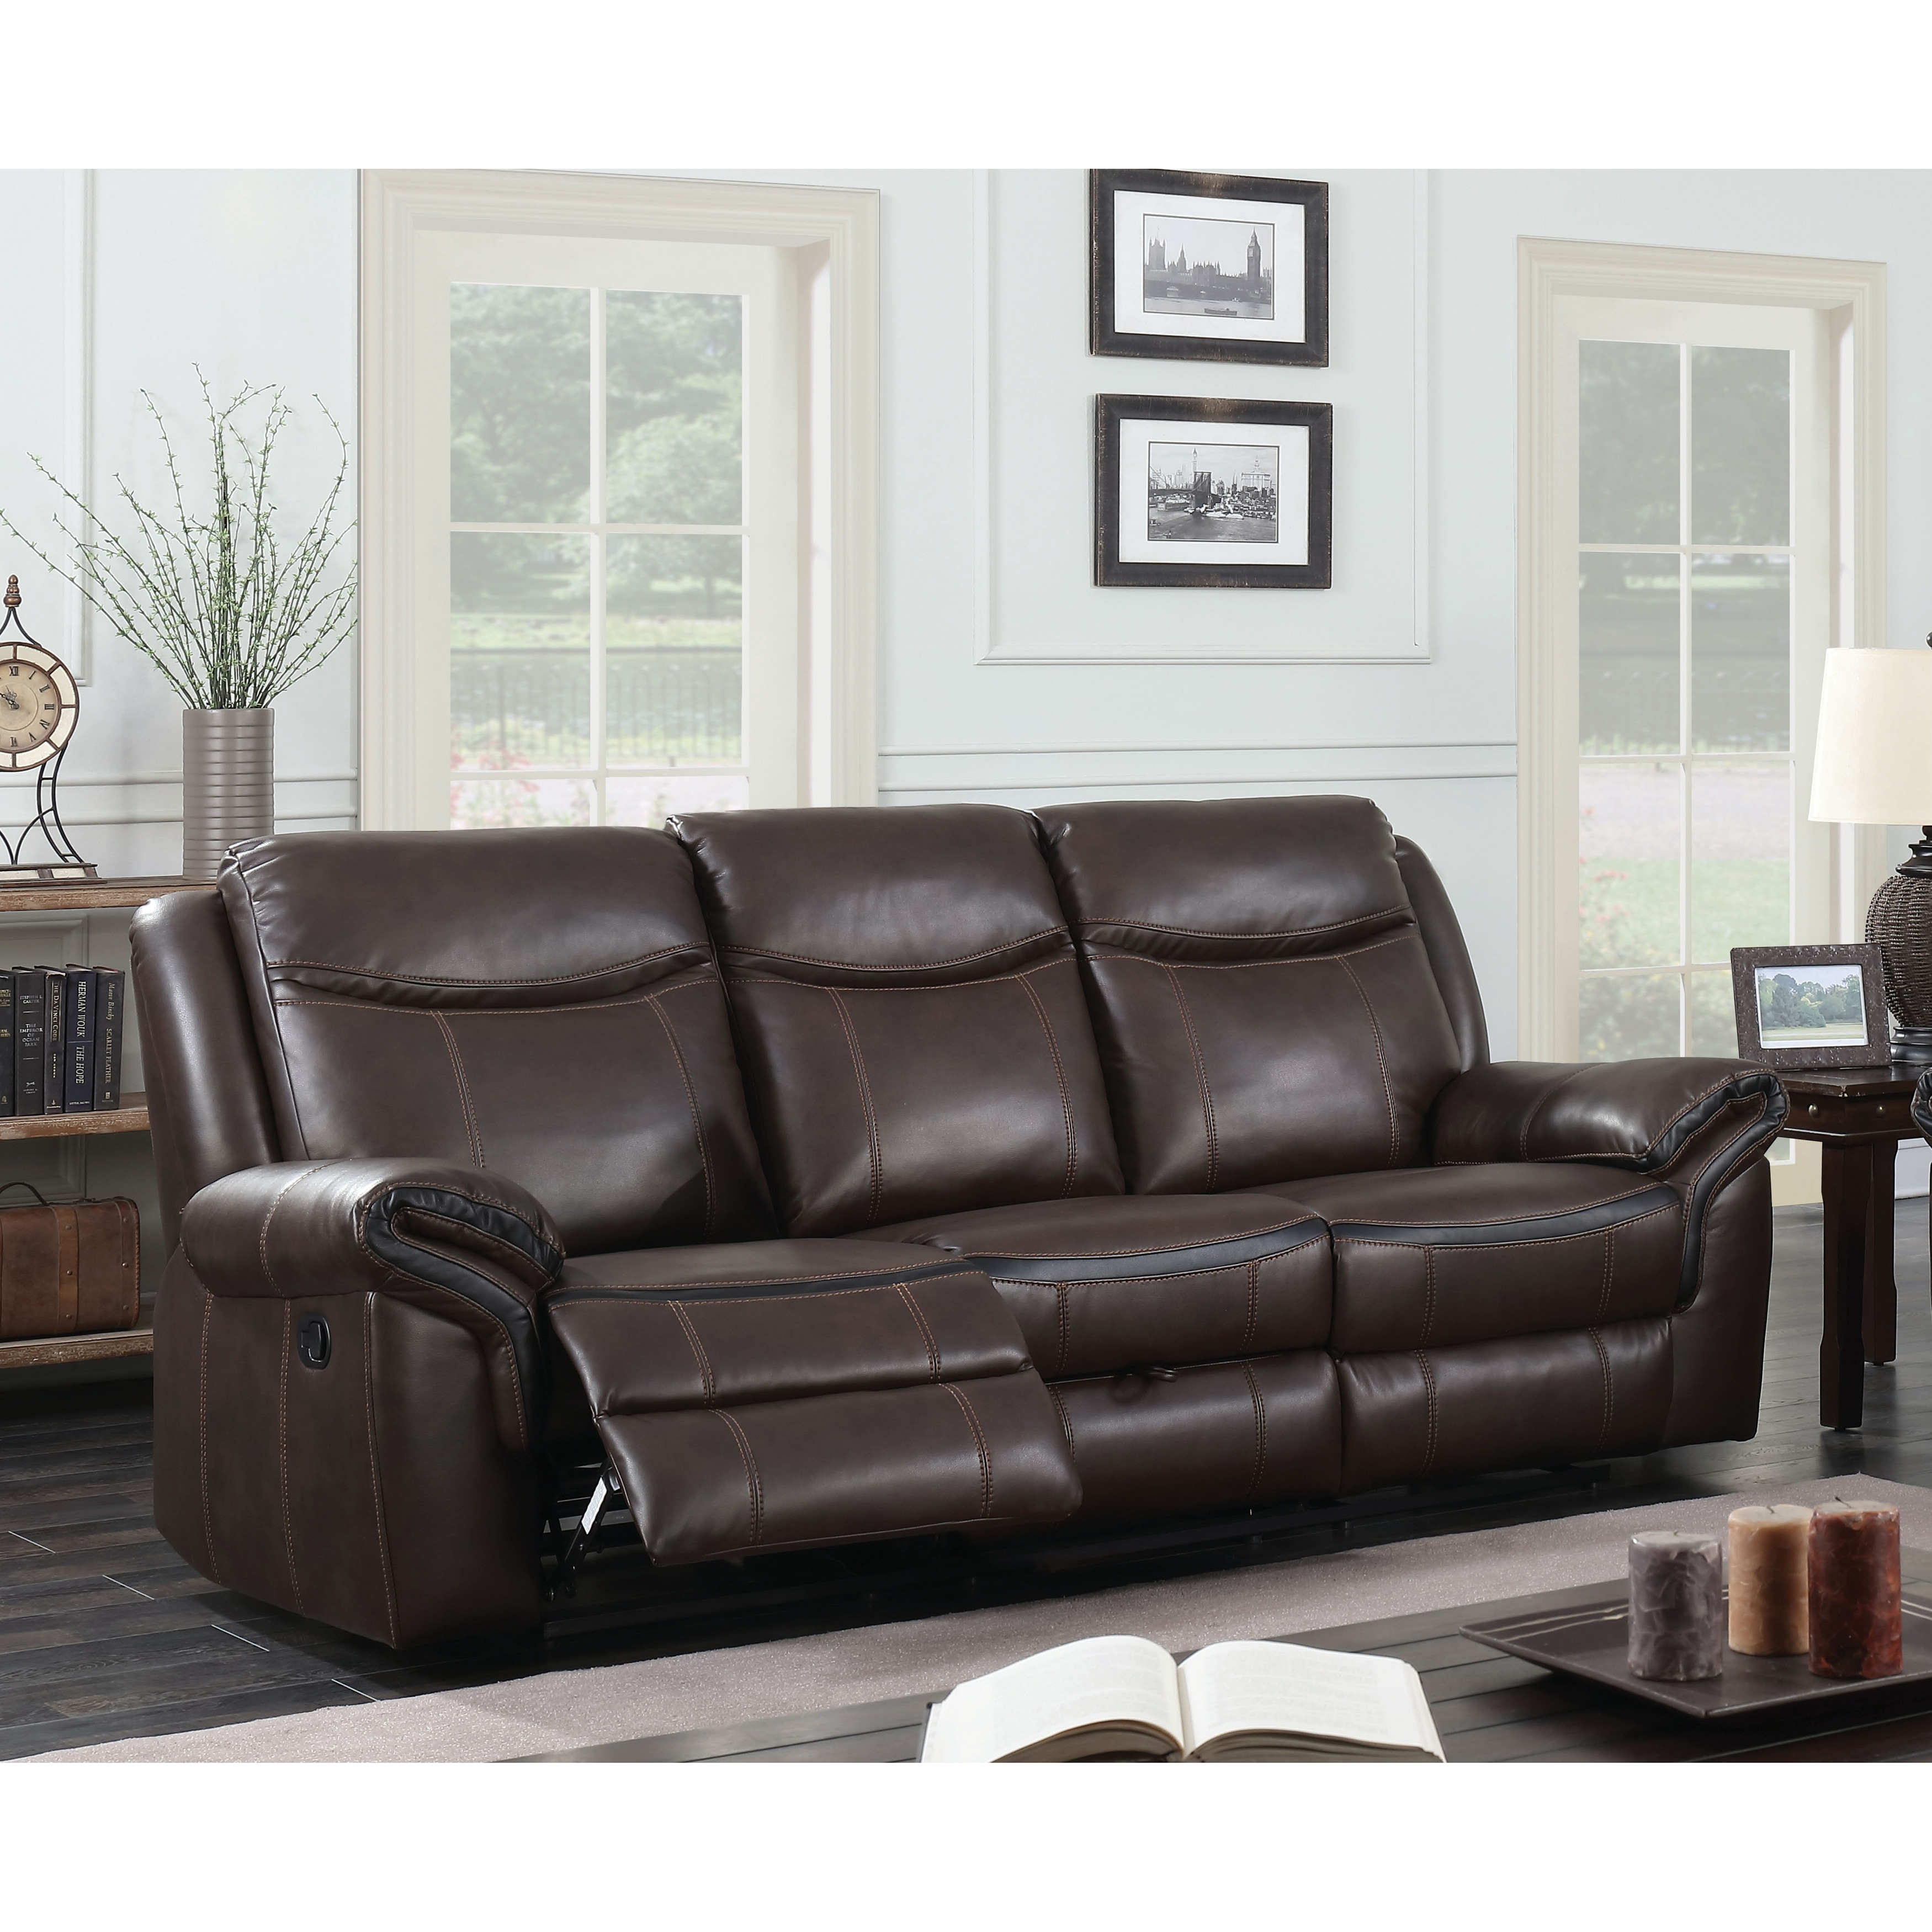 Furniture Of America Jefferson Transitional Brown Leather